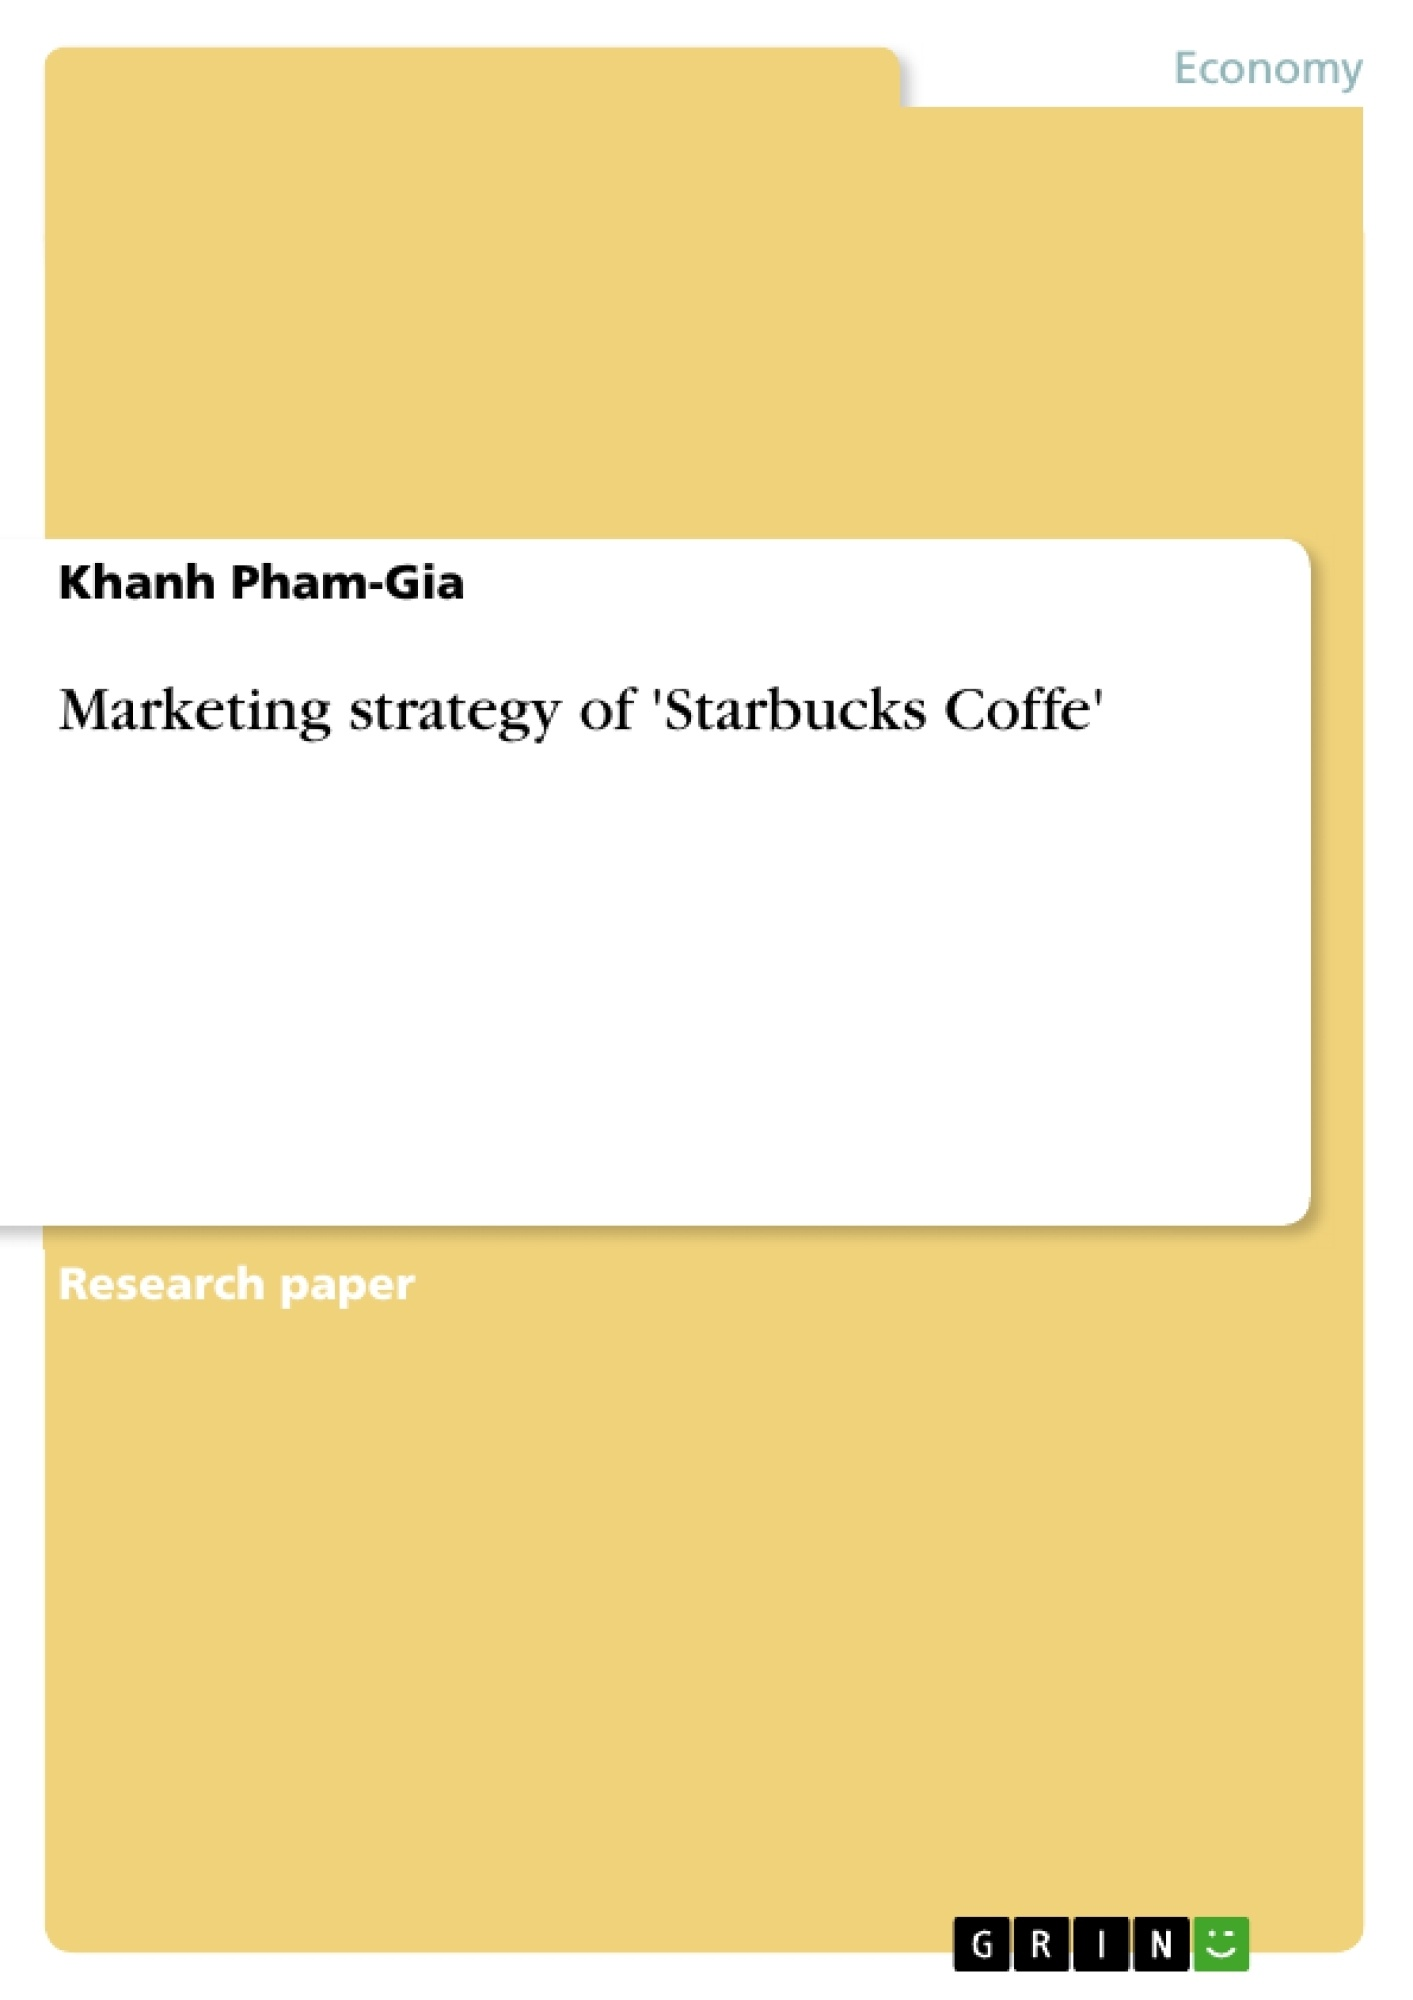 starbucks marketing strategy